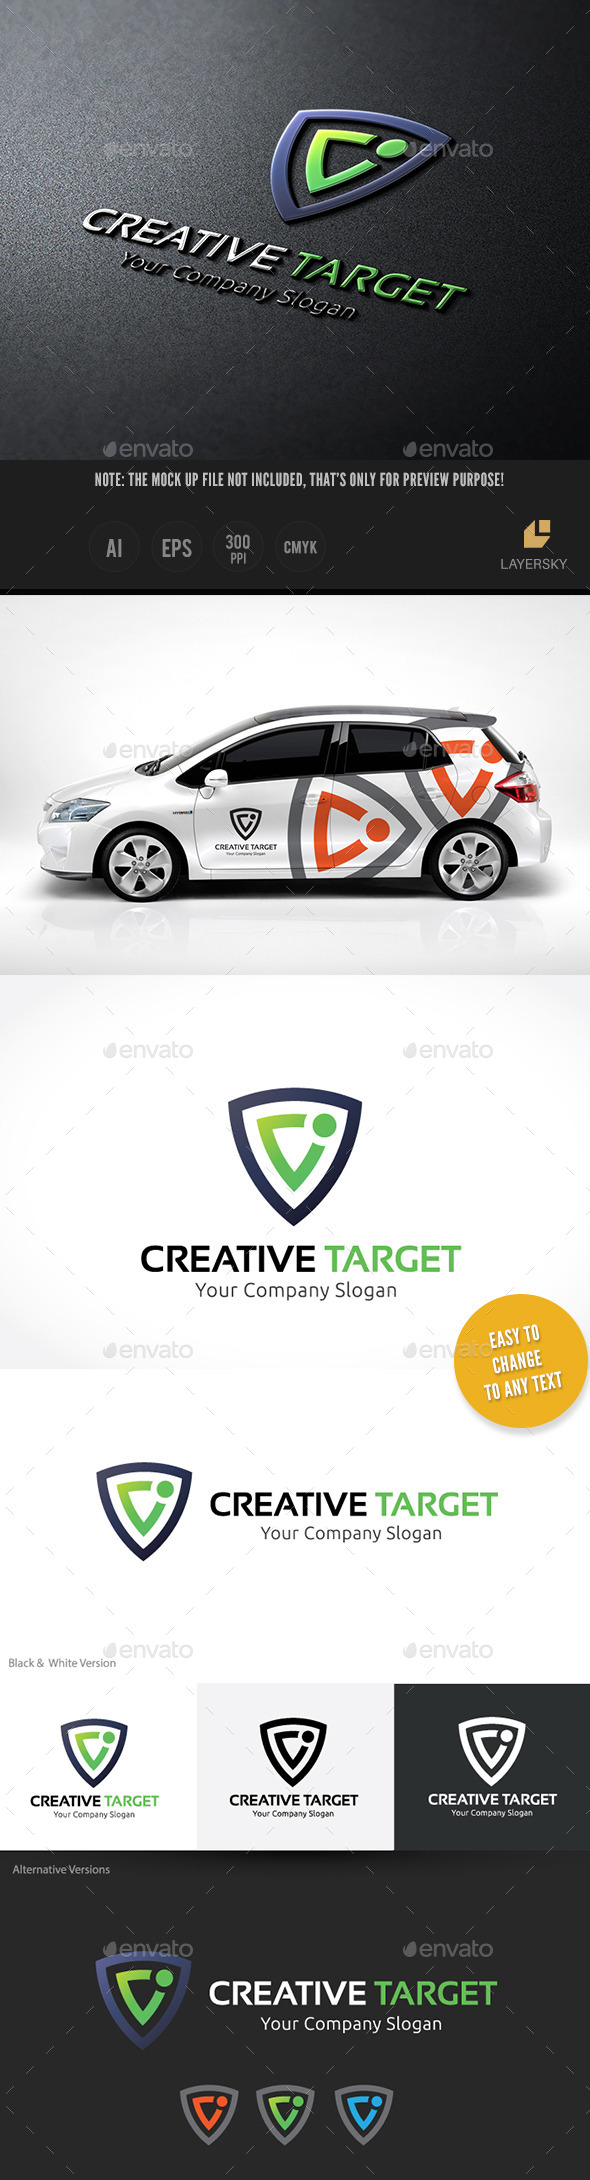 Creative Target - Vector Abstract